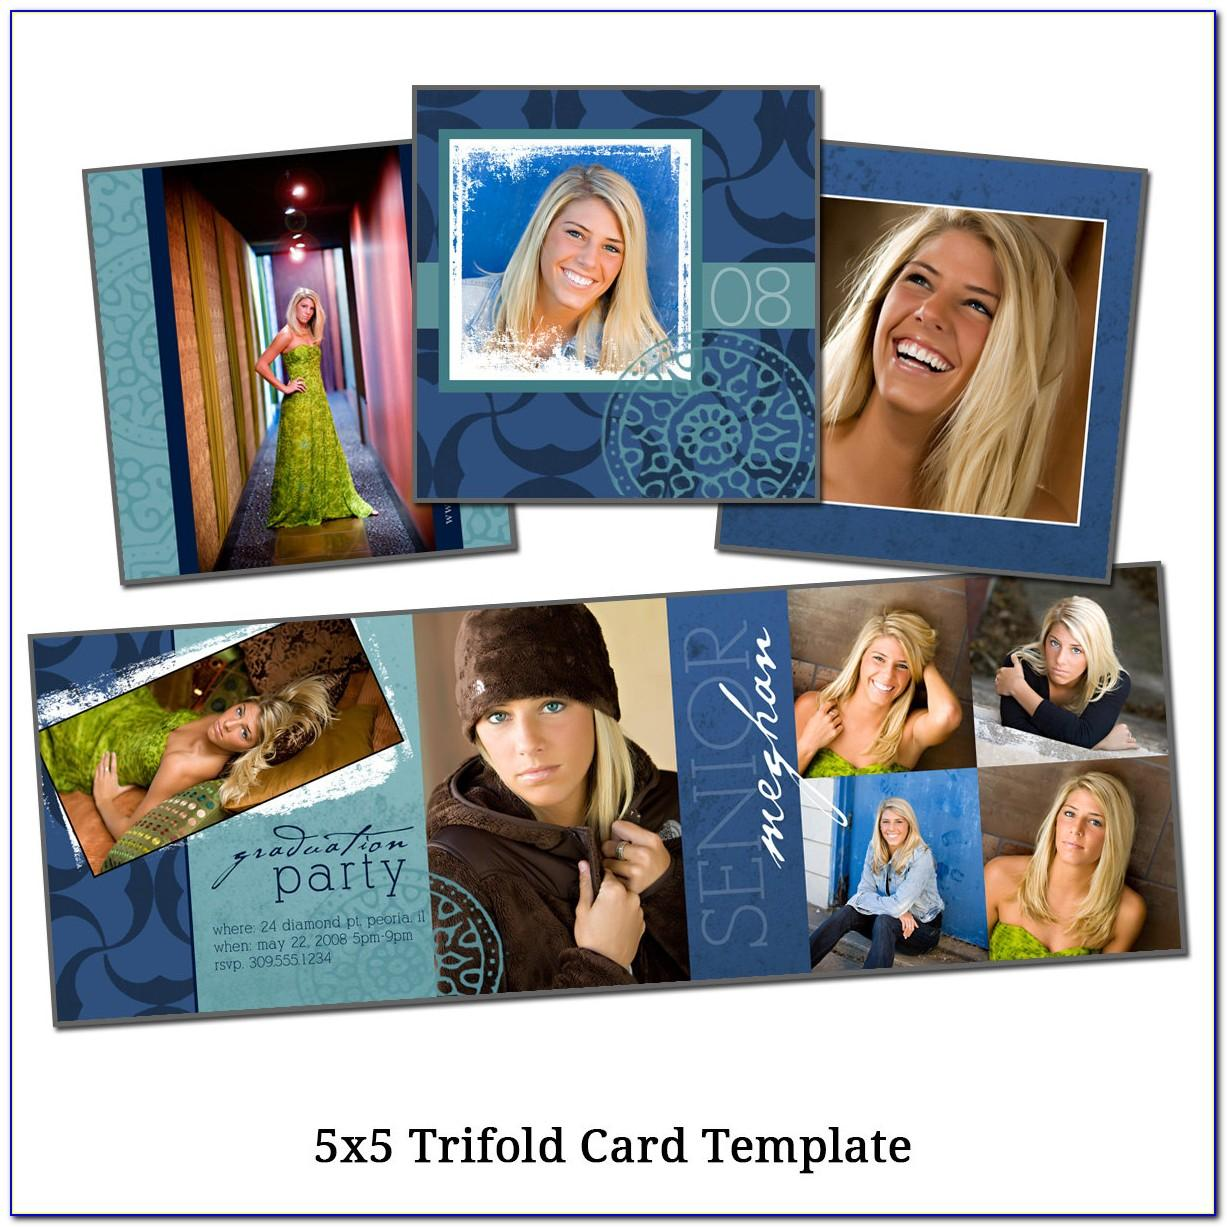 5x5 Trifold Card Template